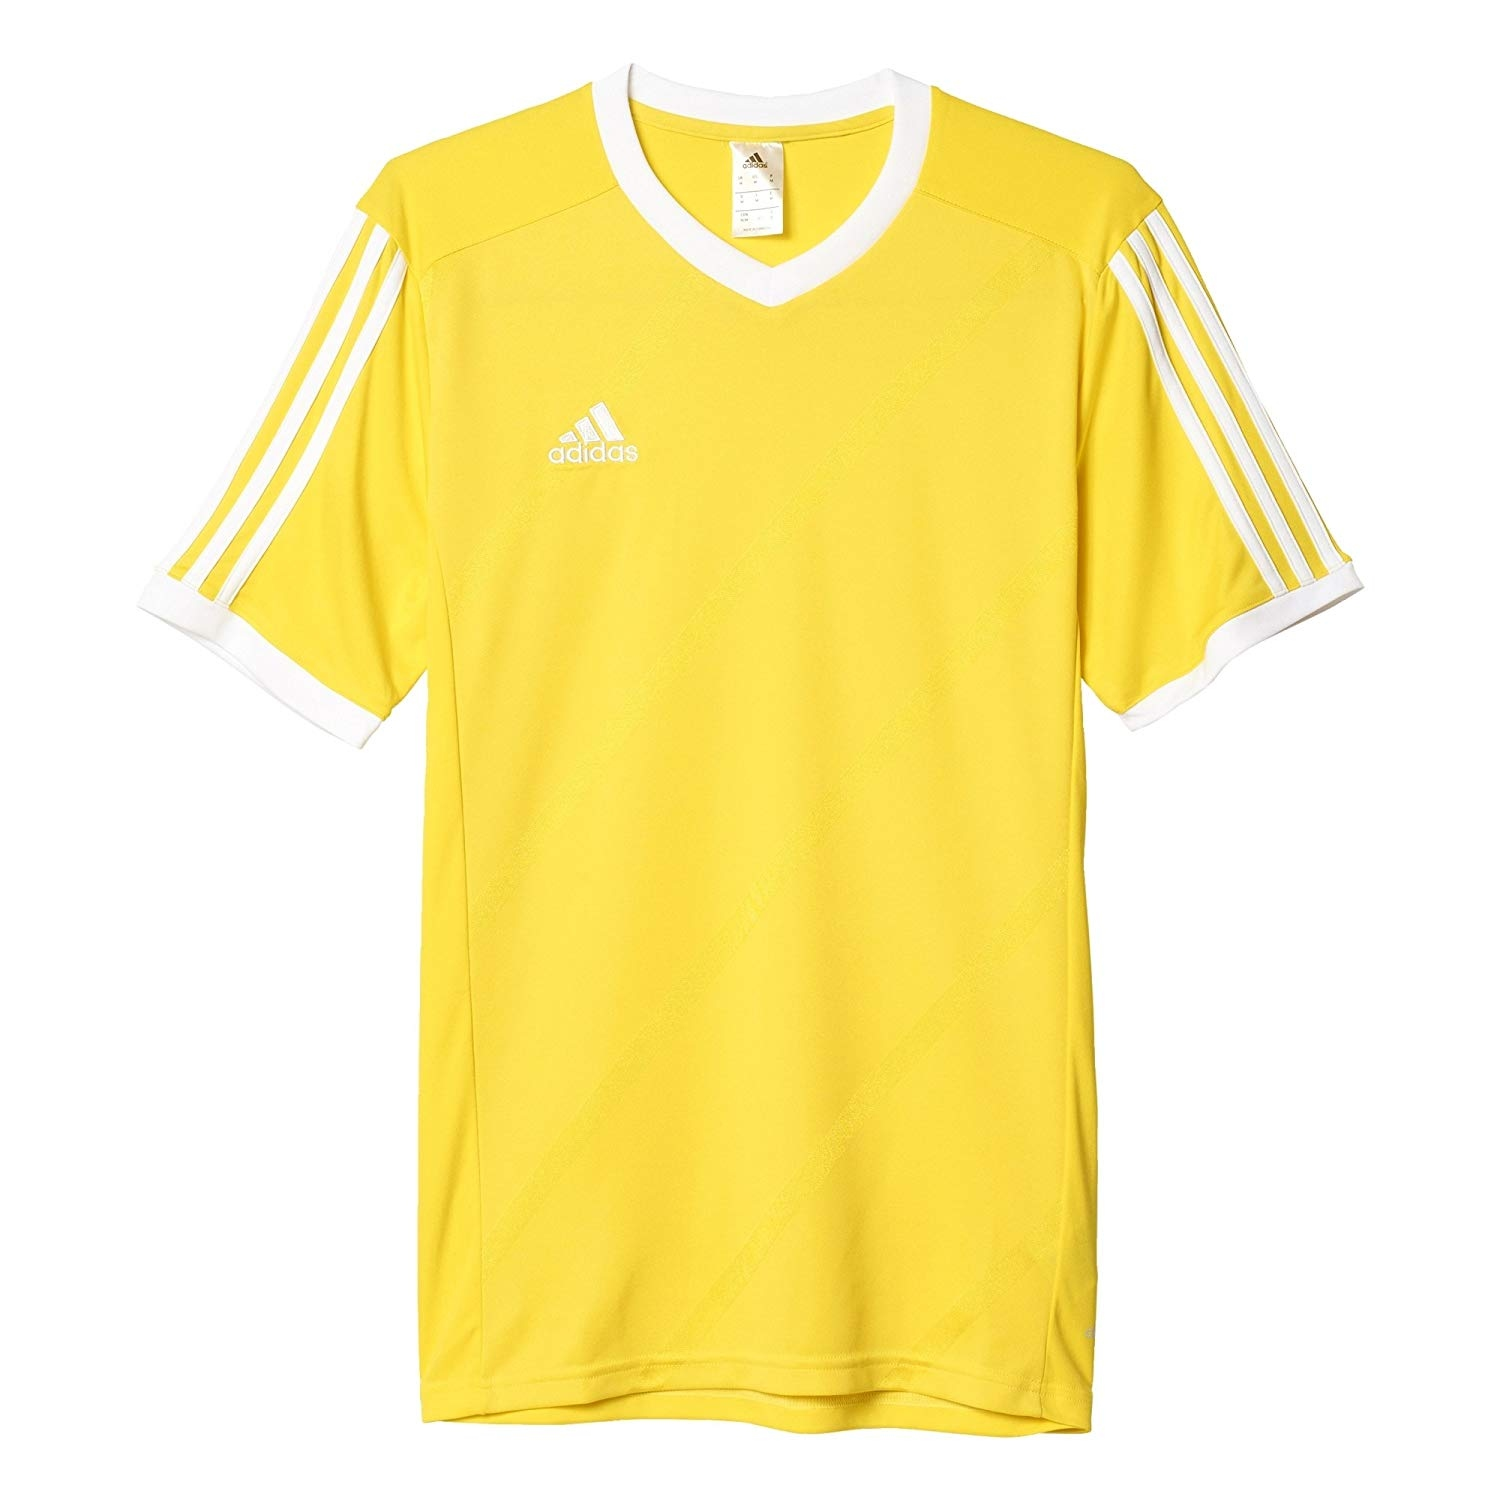 adidas t shirt yellow